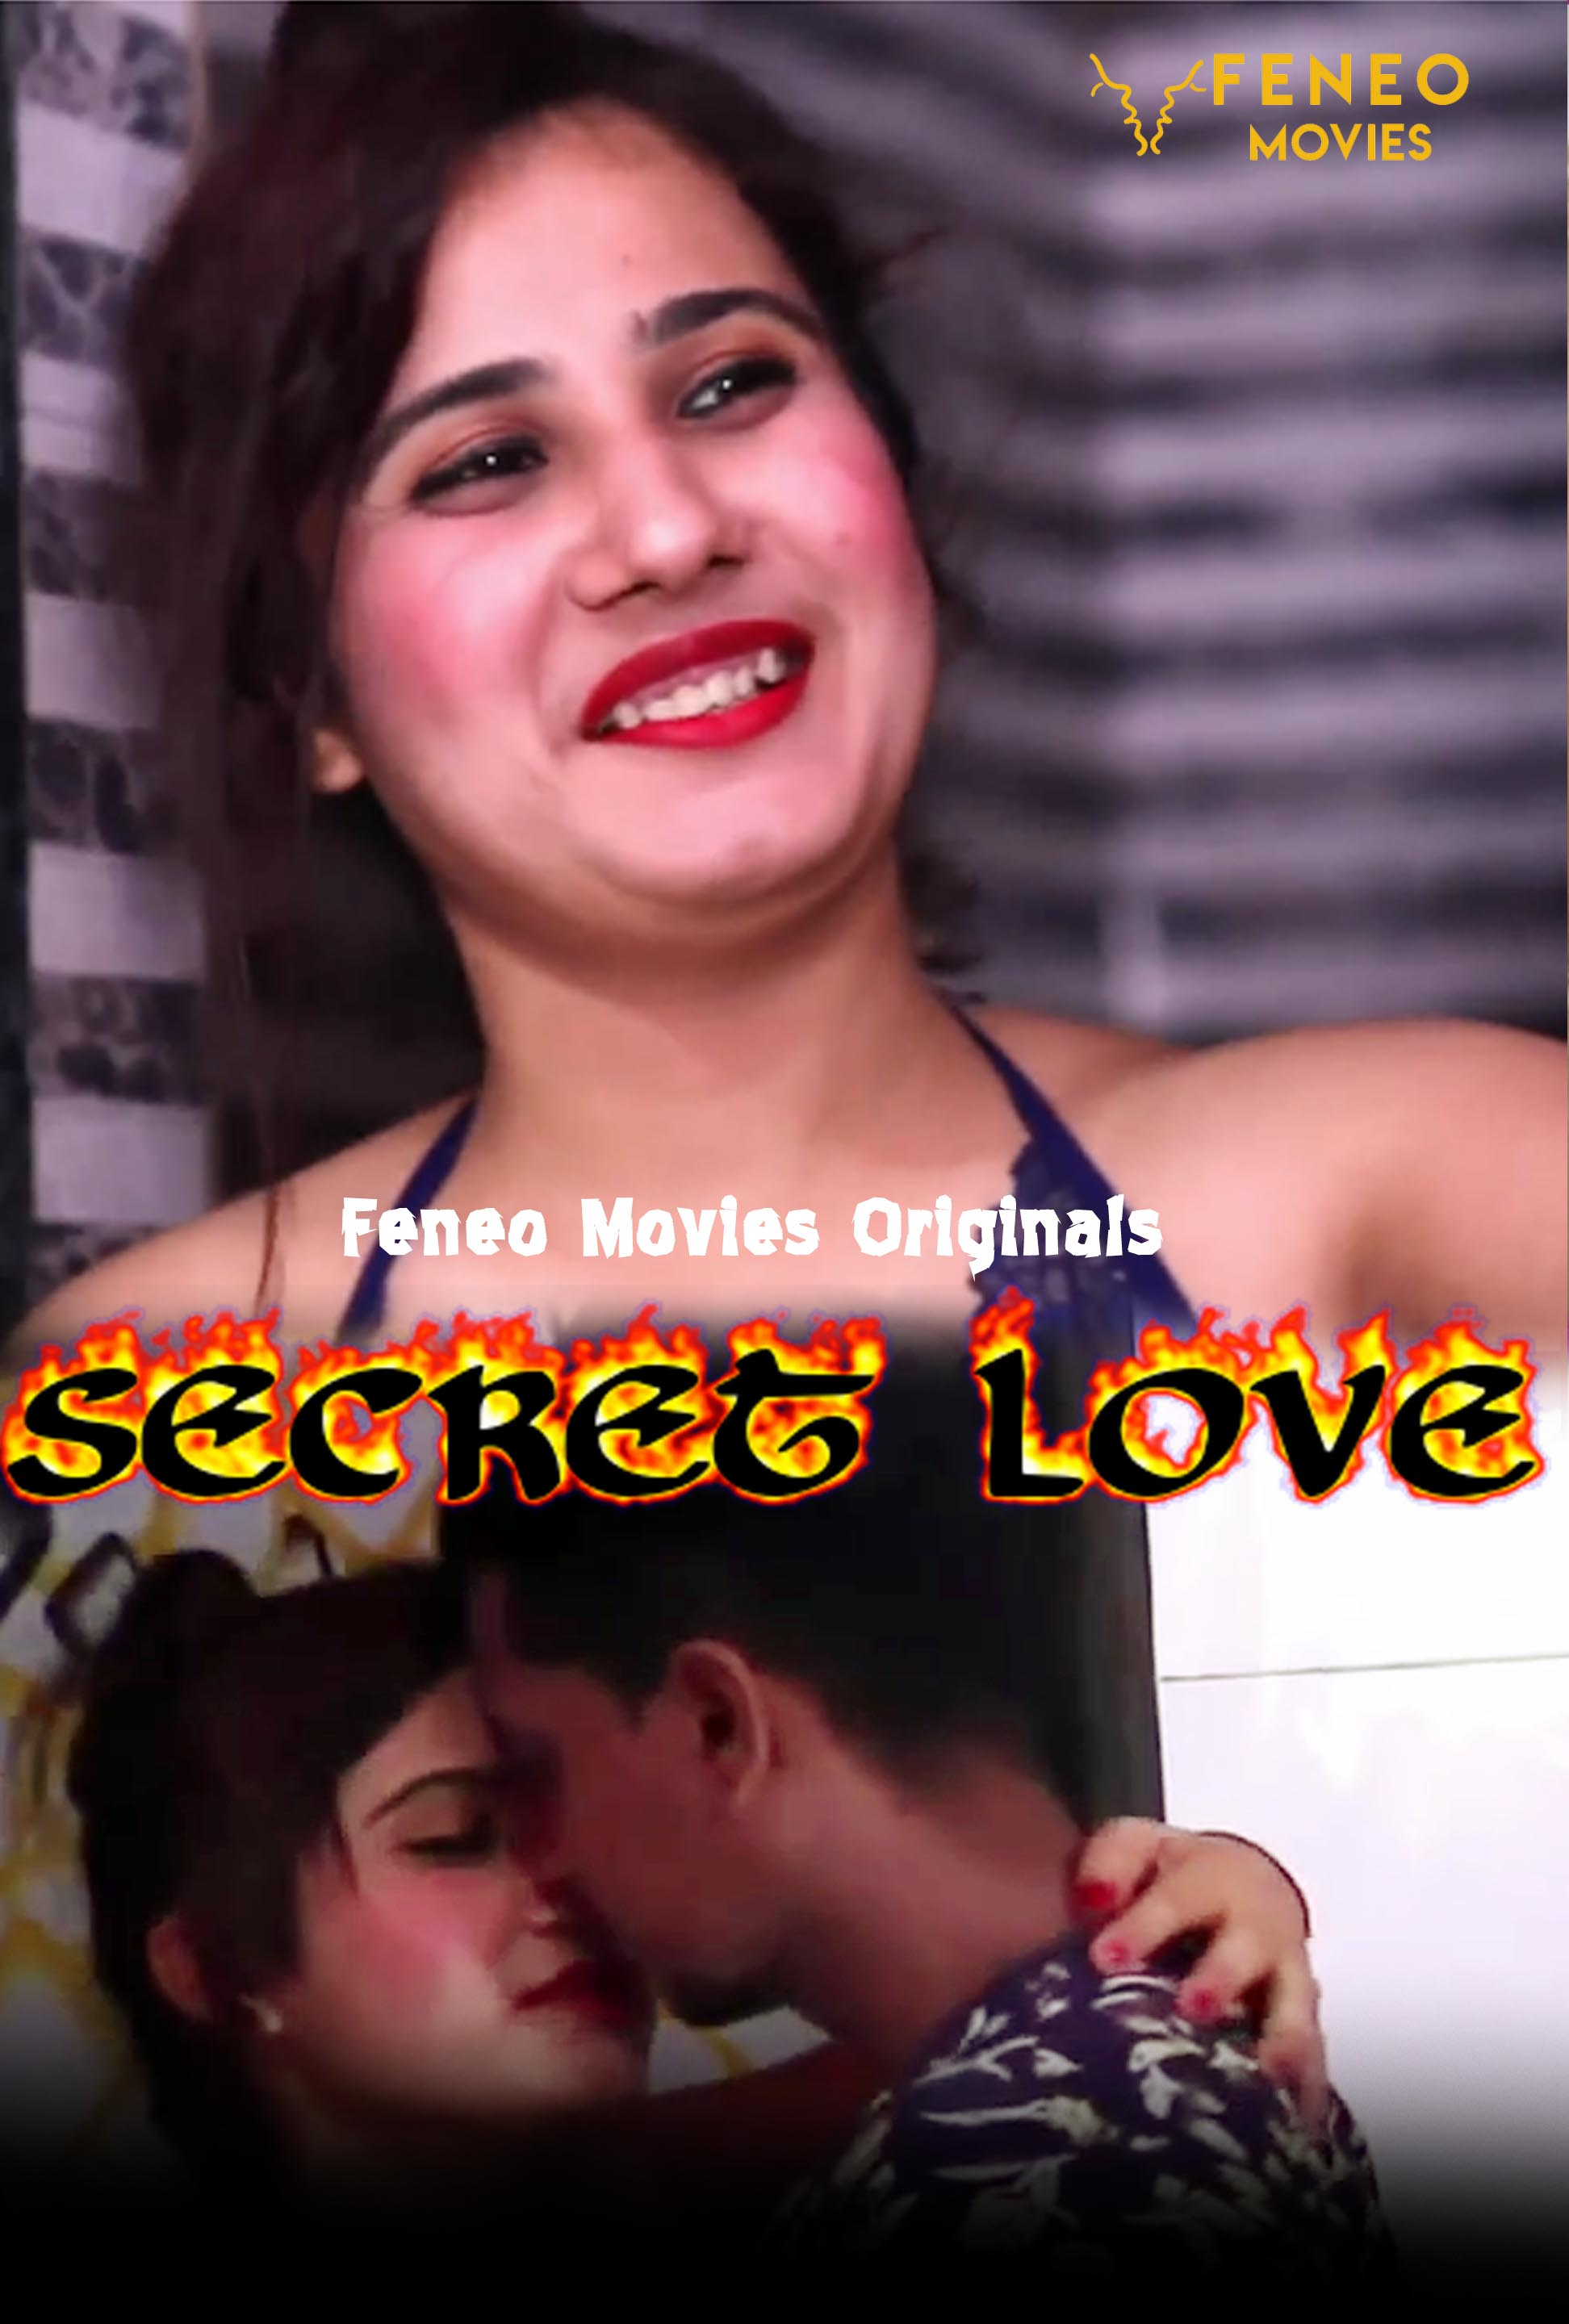 Secret Love 2020 S01E02 Hindi Feneomovies Original Web Series 720p HDRip 210MB x264 AAC